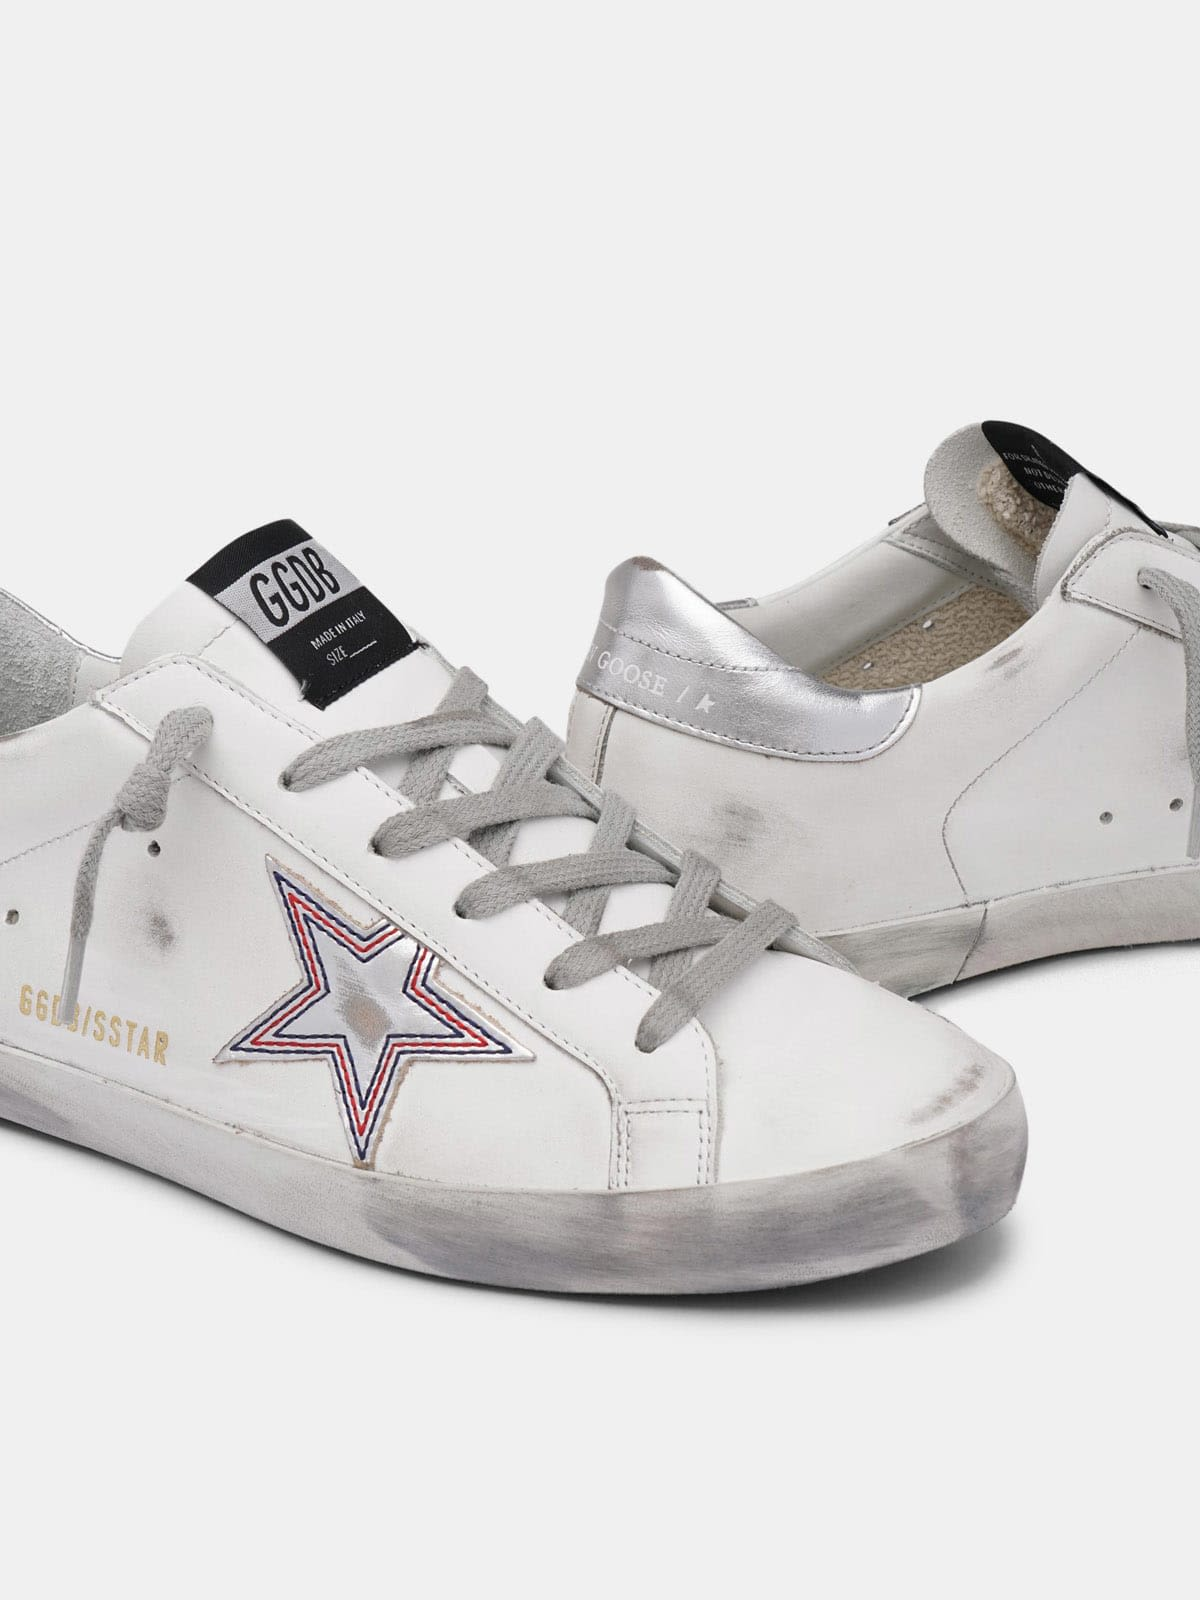 Silver star Super-Star sneakers with contrasting stitching